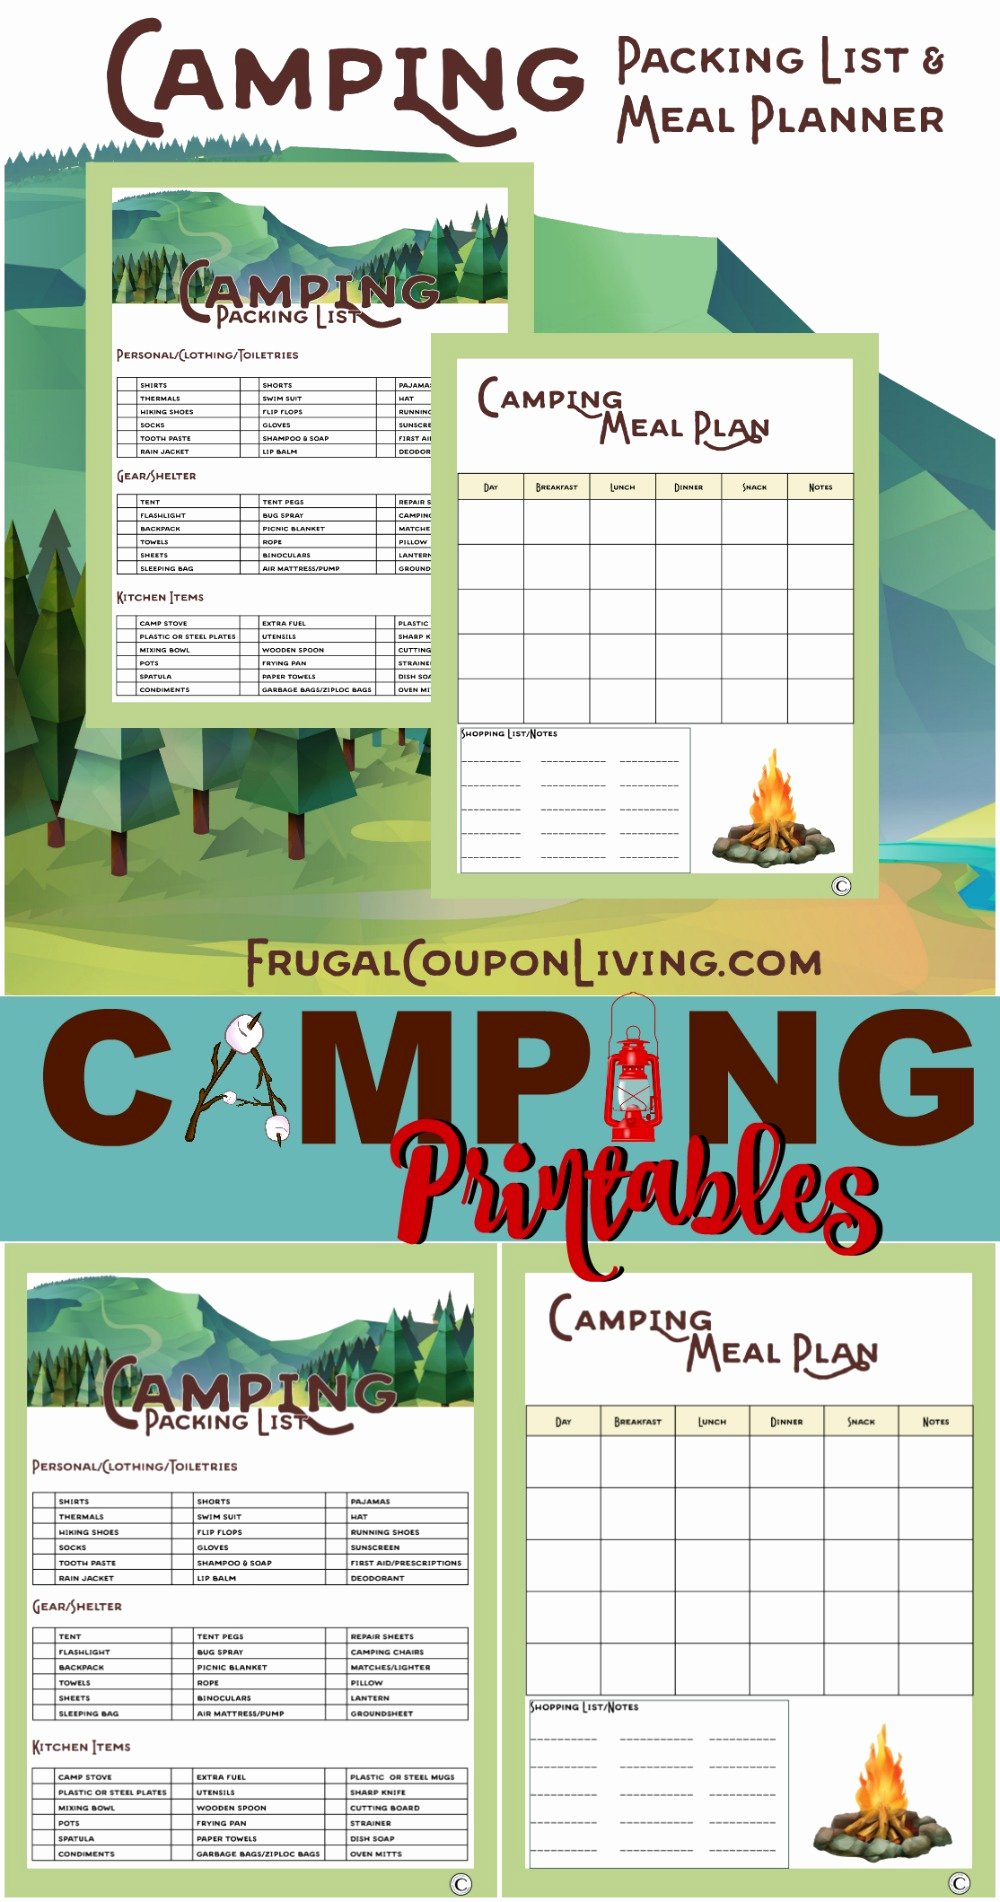 Camping Meal Plan Template Inspirational Camping Printables Packing List and Meal Planner